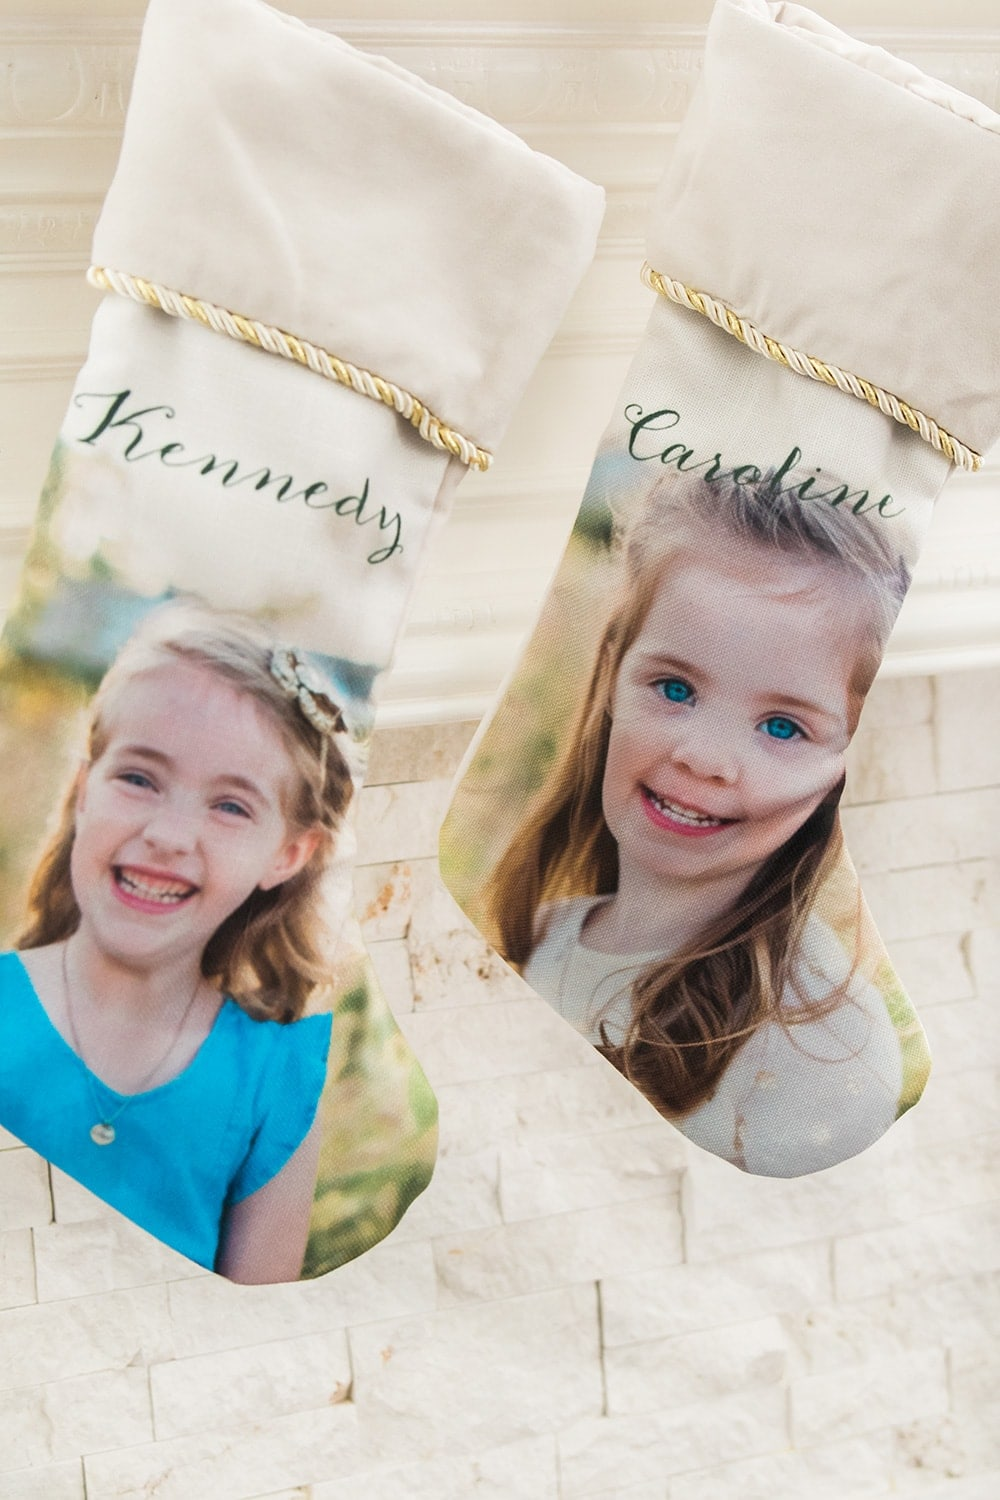 Personalized photo stockings from Shutterfly